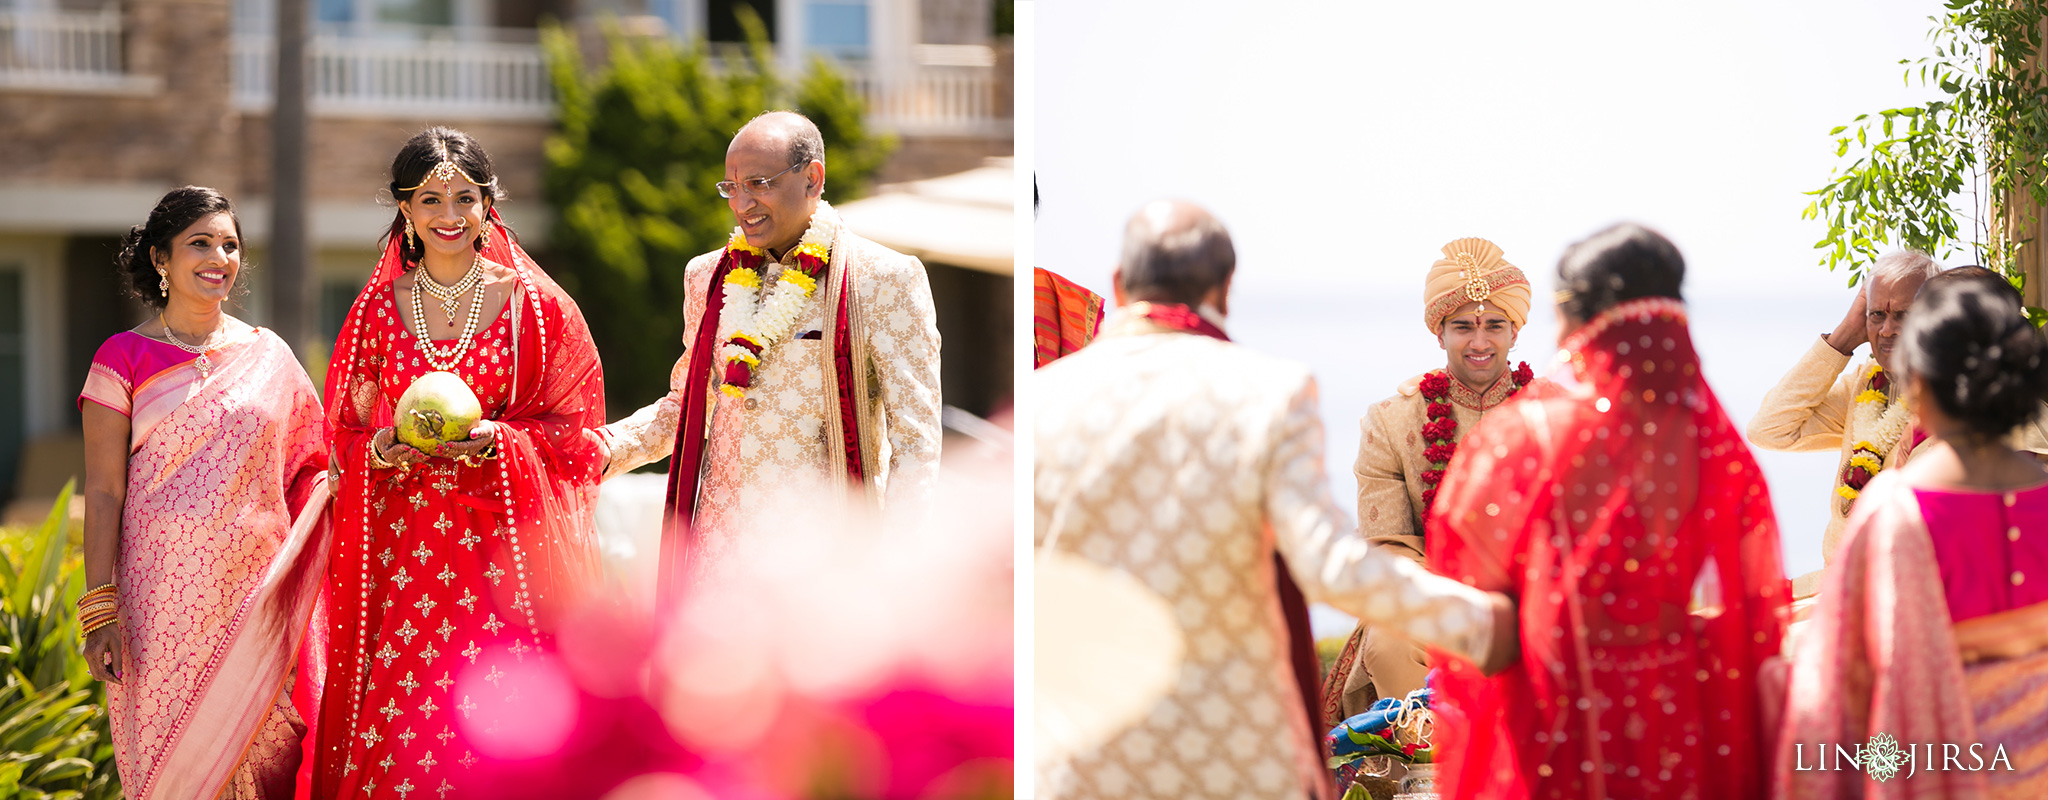 Montage Laguna Beach Indian Wedding Sravya Amp Subir